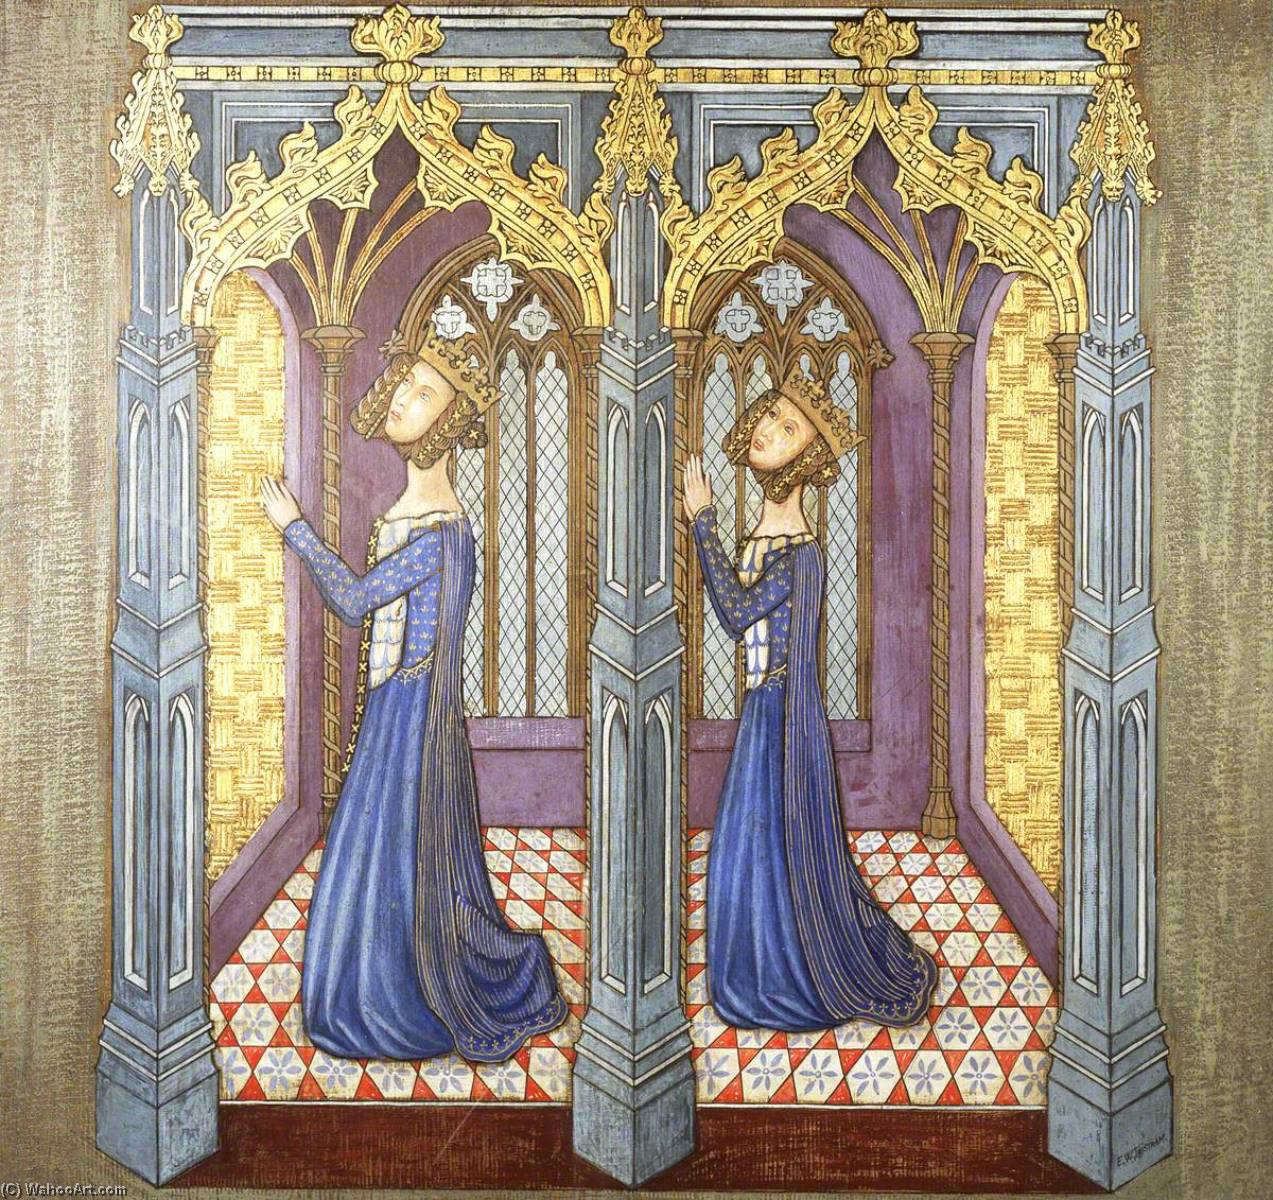 Order Paintings Reproductions | Reconstruction of Medieval Mural Painting, Queen Philippa`s Daughters Kneeling in Prayer, 1927 by Ernest William Tristram | WahooArt.com